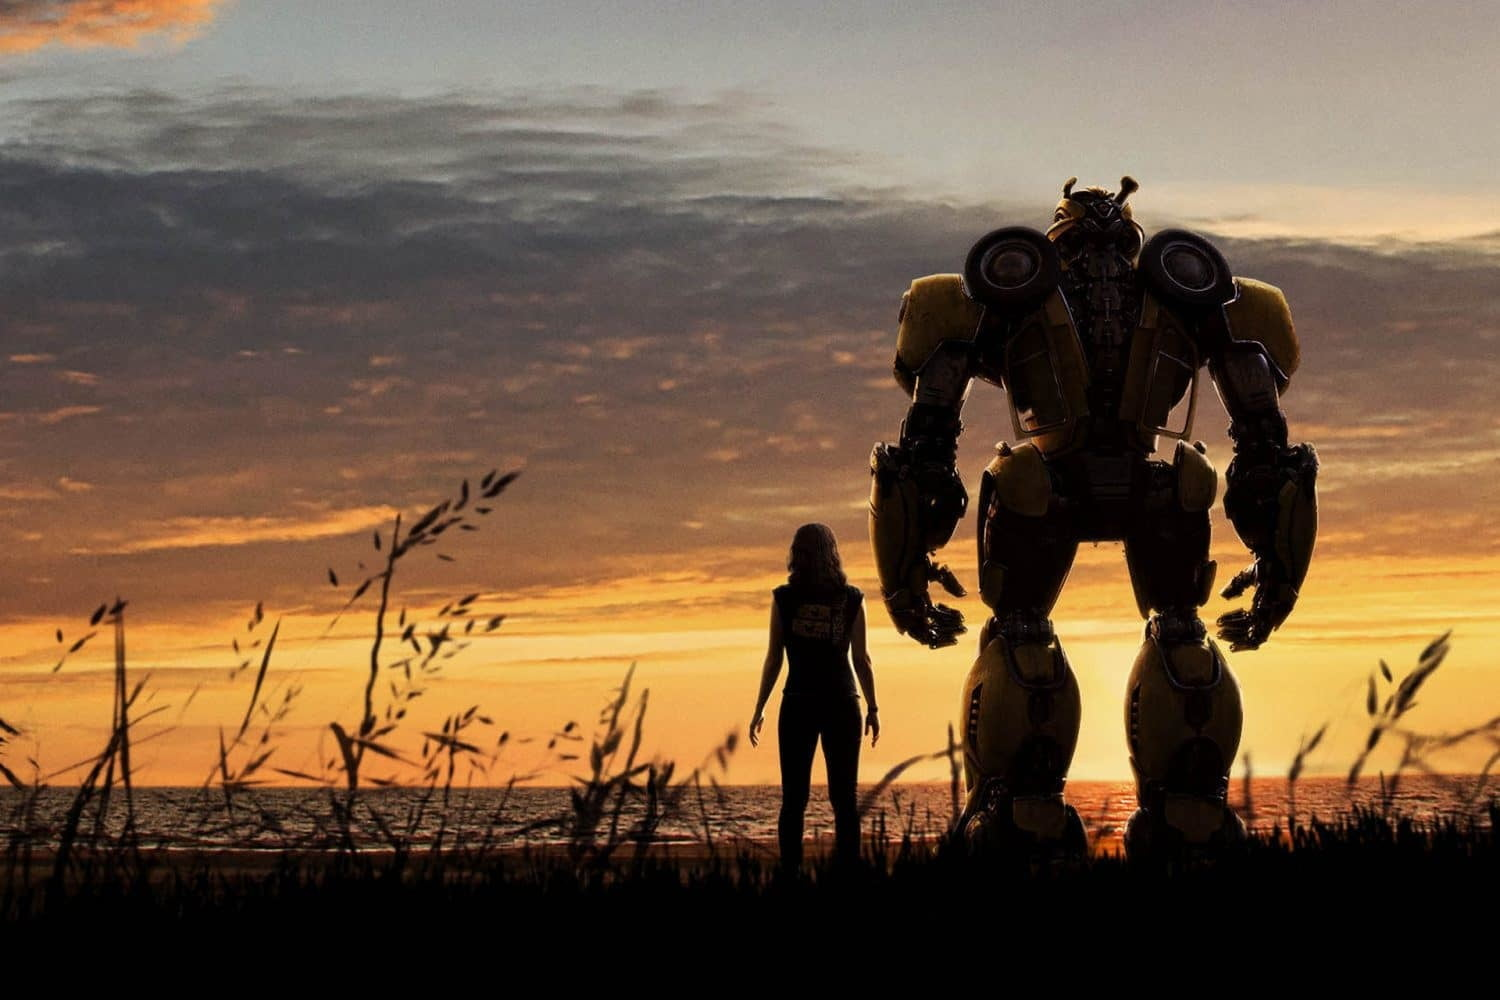 From Bumblebee (2018).  Charlie and Bumblebee stand side by side facing the ocean during the sunset.